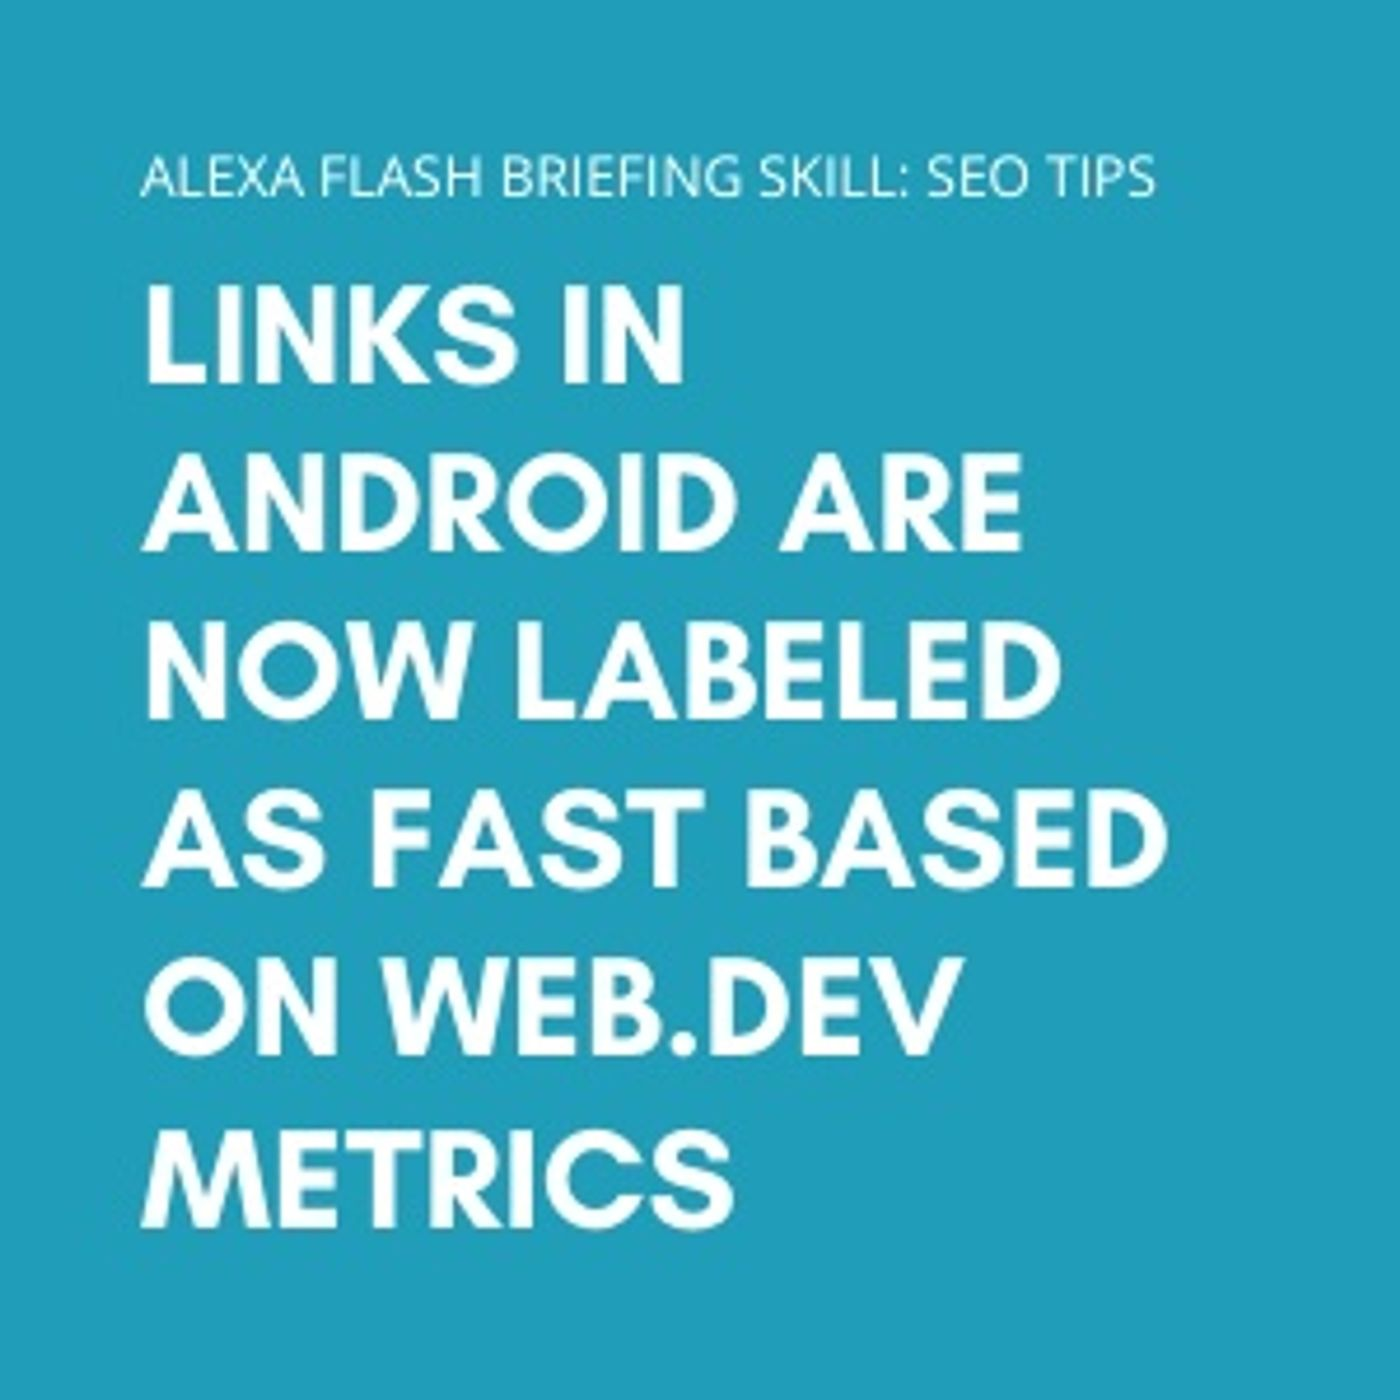 Links in Android are now labeled as fast based on web.dev metrics